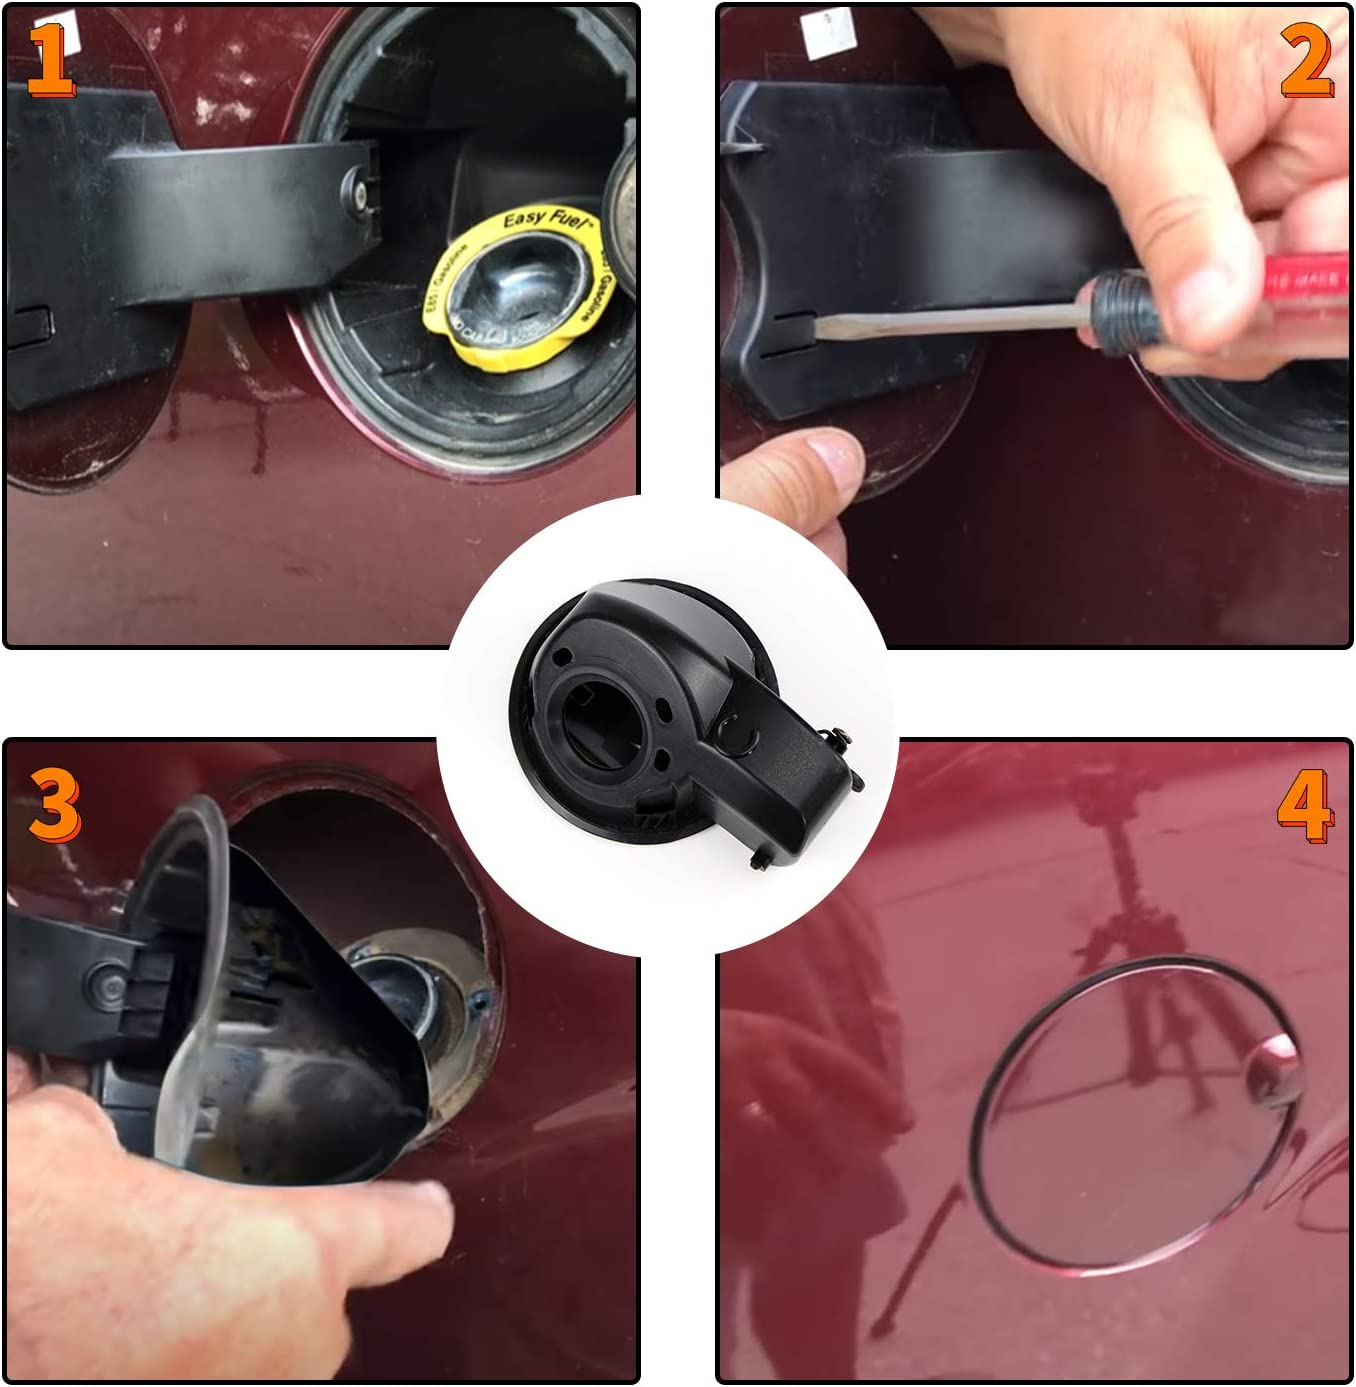 Funmit Fuel Filler Door Housing Pocket Assembly Gas Tank Cap Door Hinge Exact for Ford Vehicles Model F150 Style Side Beds Year 2009-2014 Replaces 9L3Z9927936B